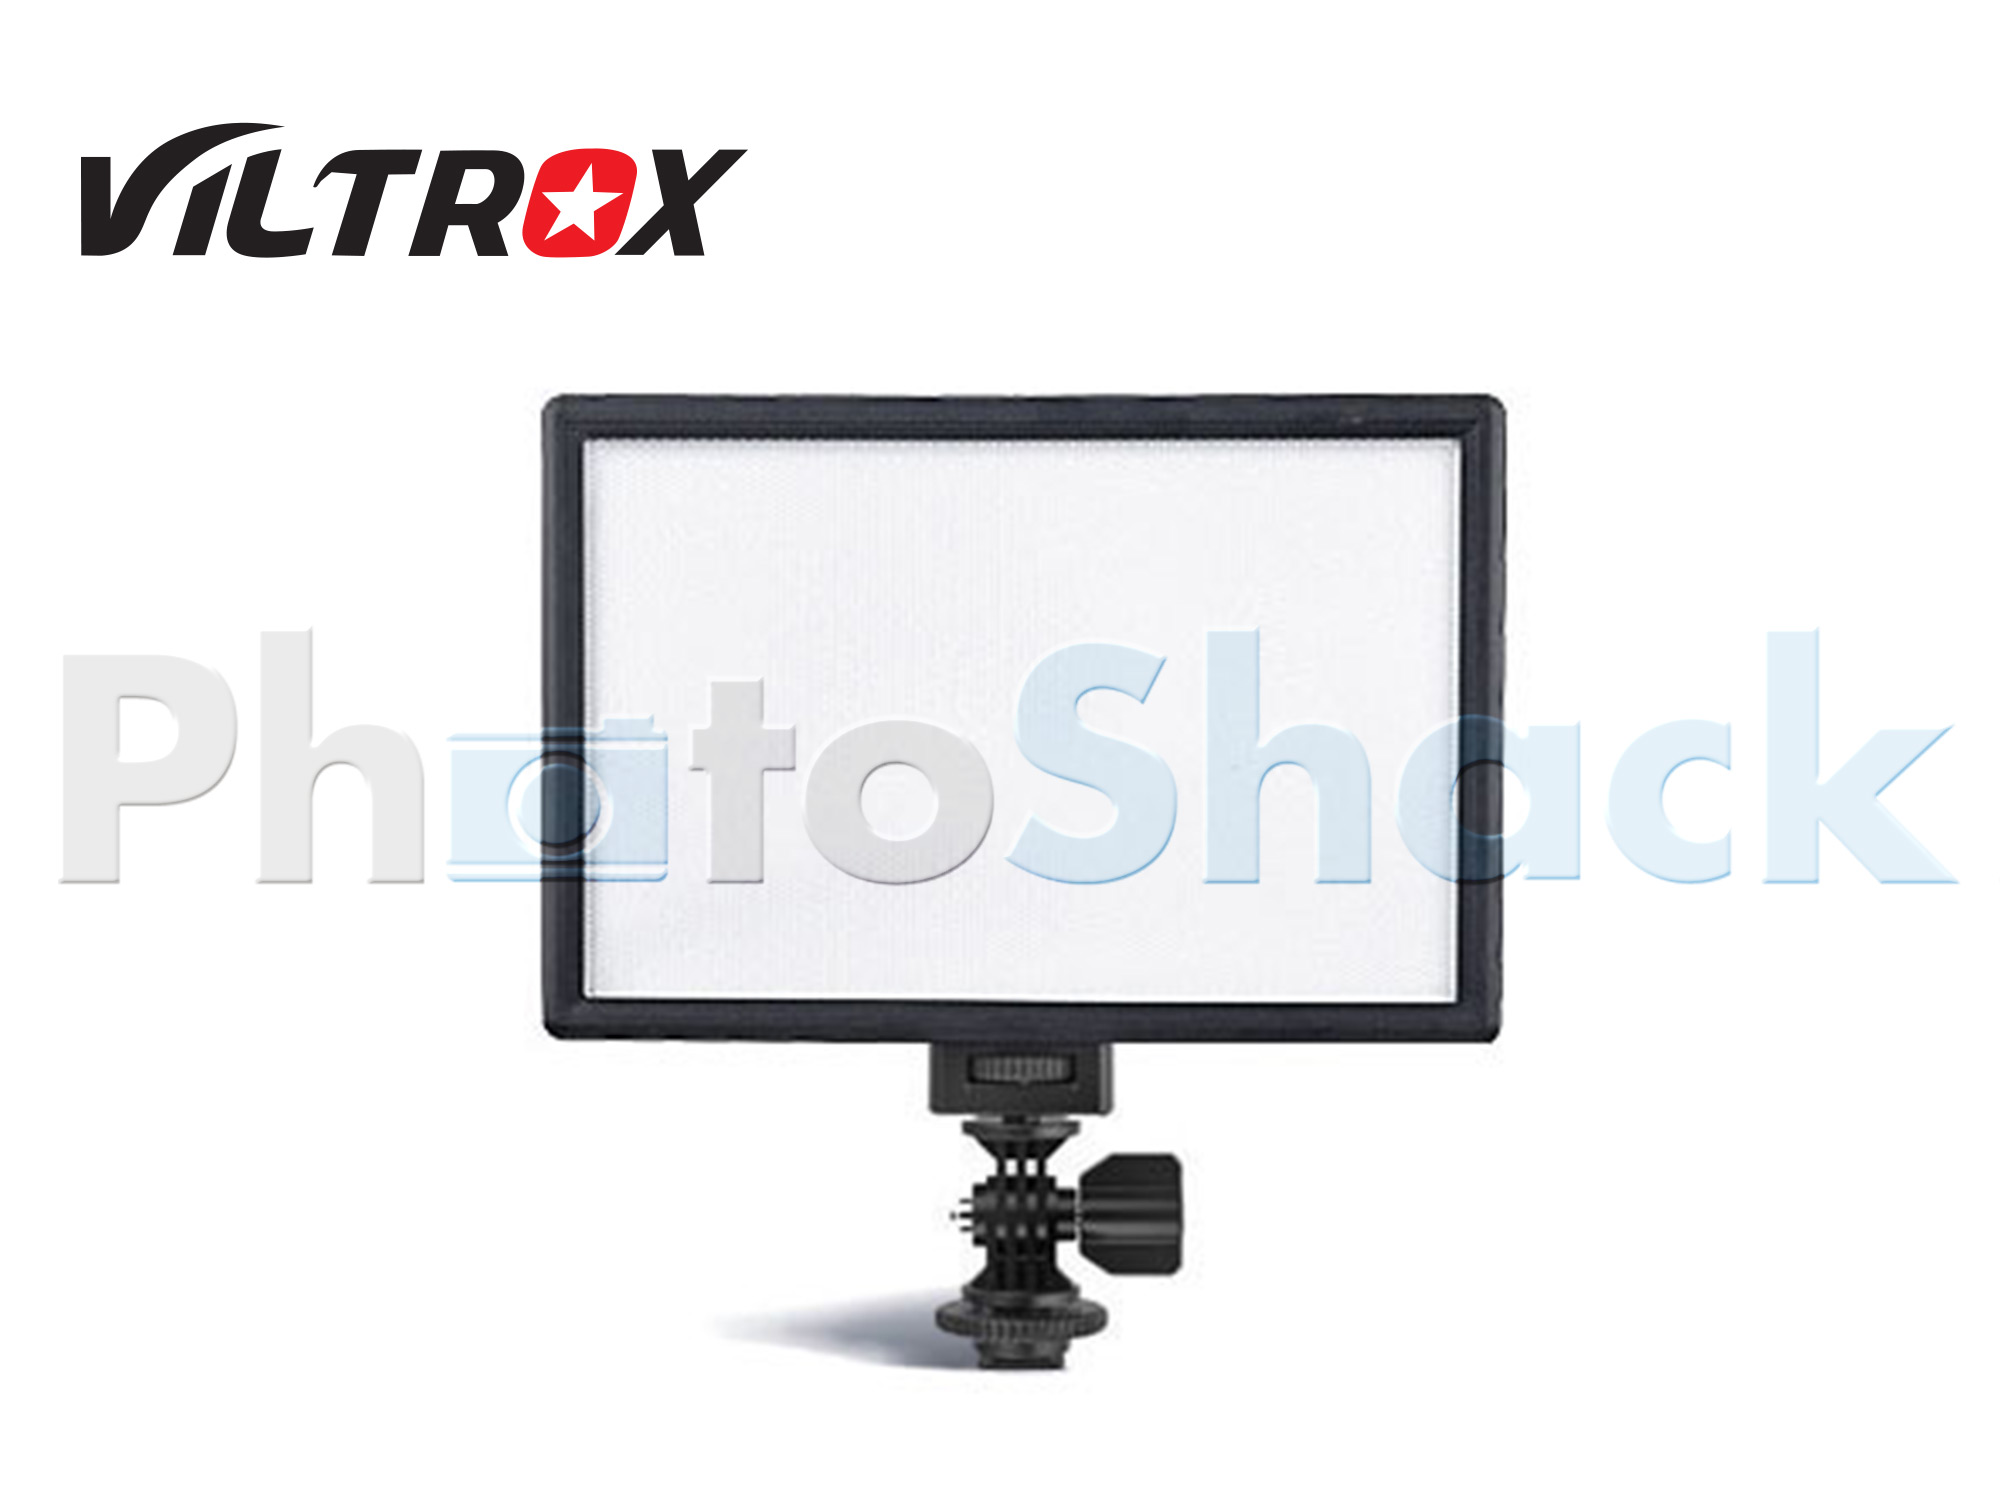 Viltrox 116 LED Soft Light - Variable Brightness